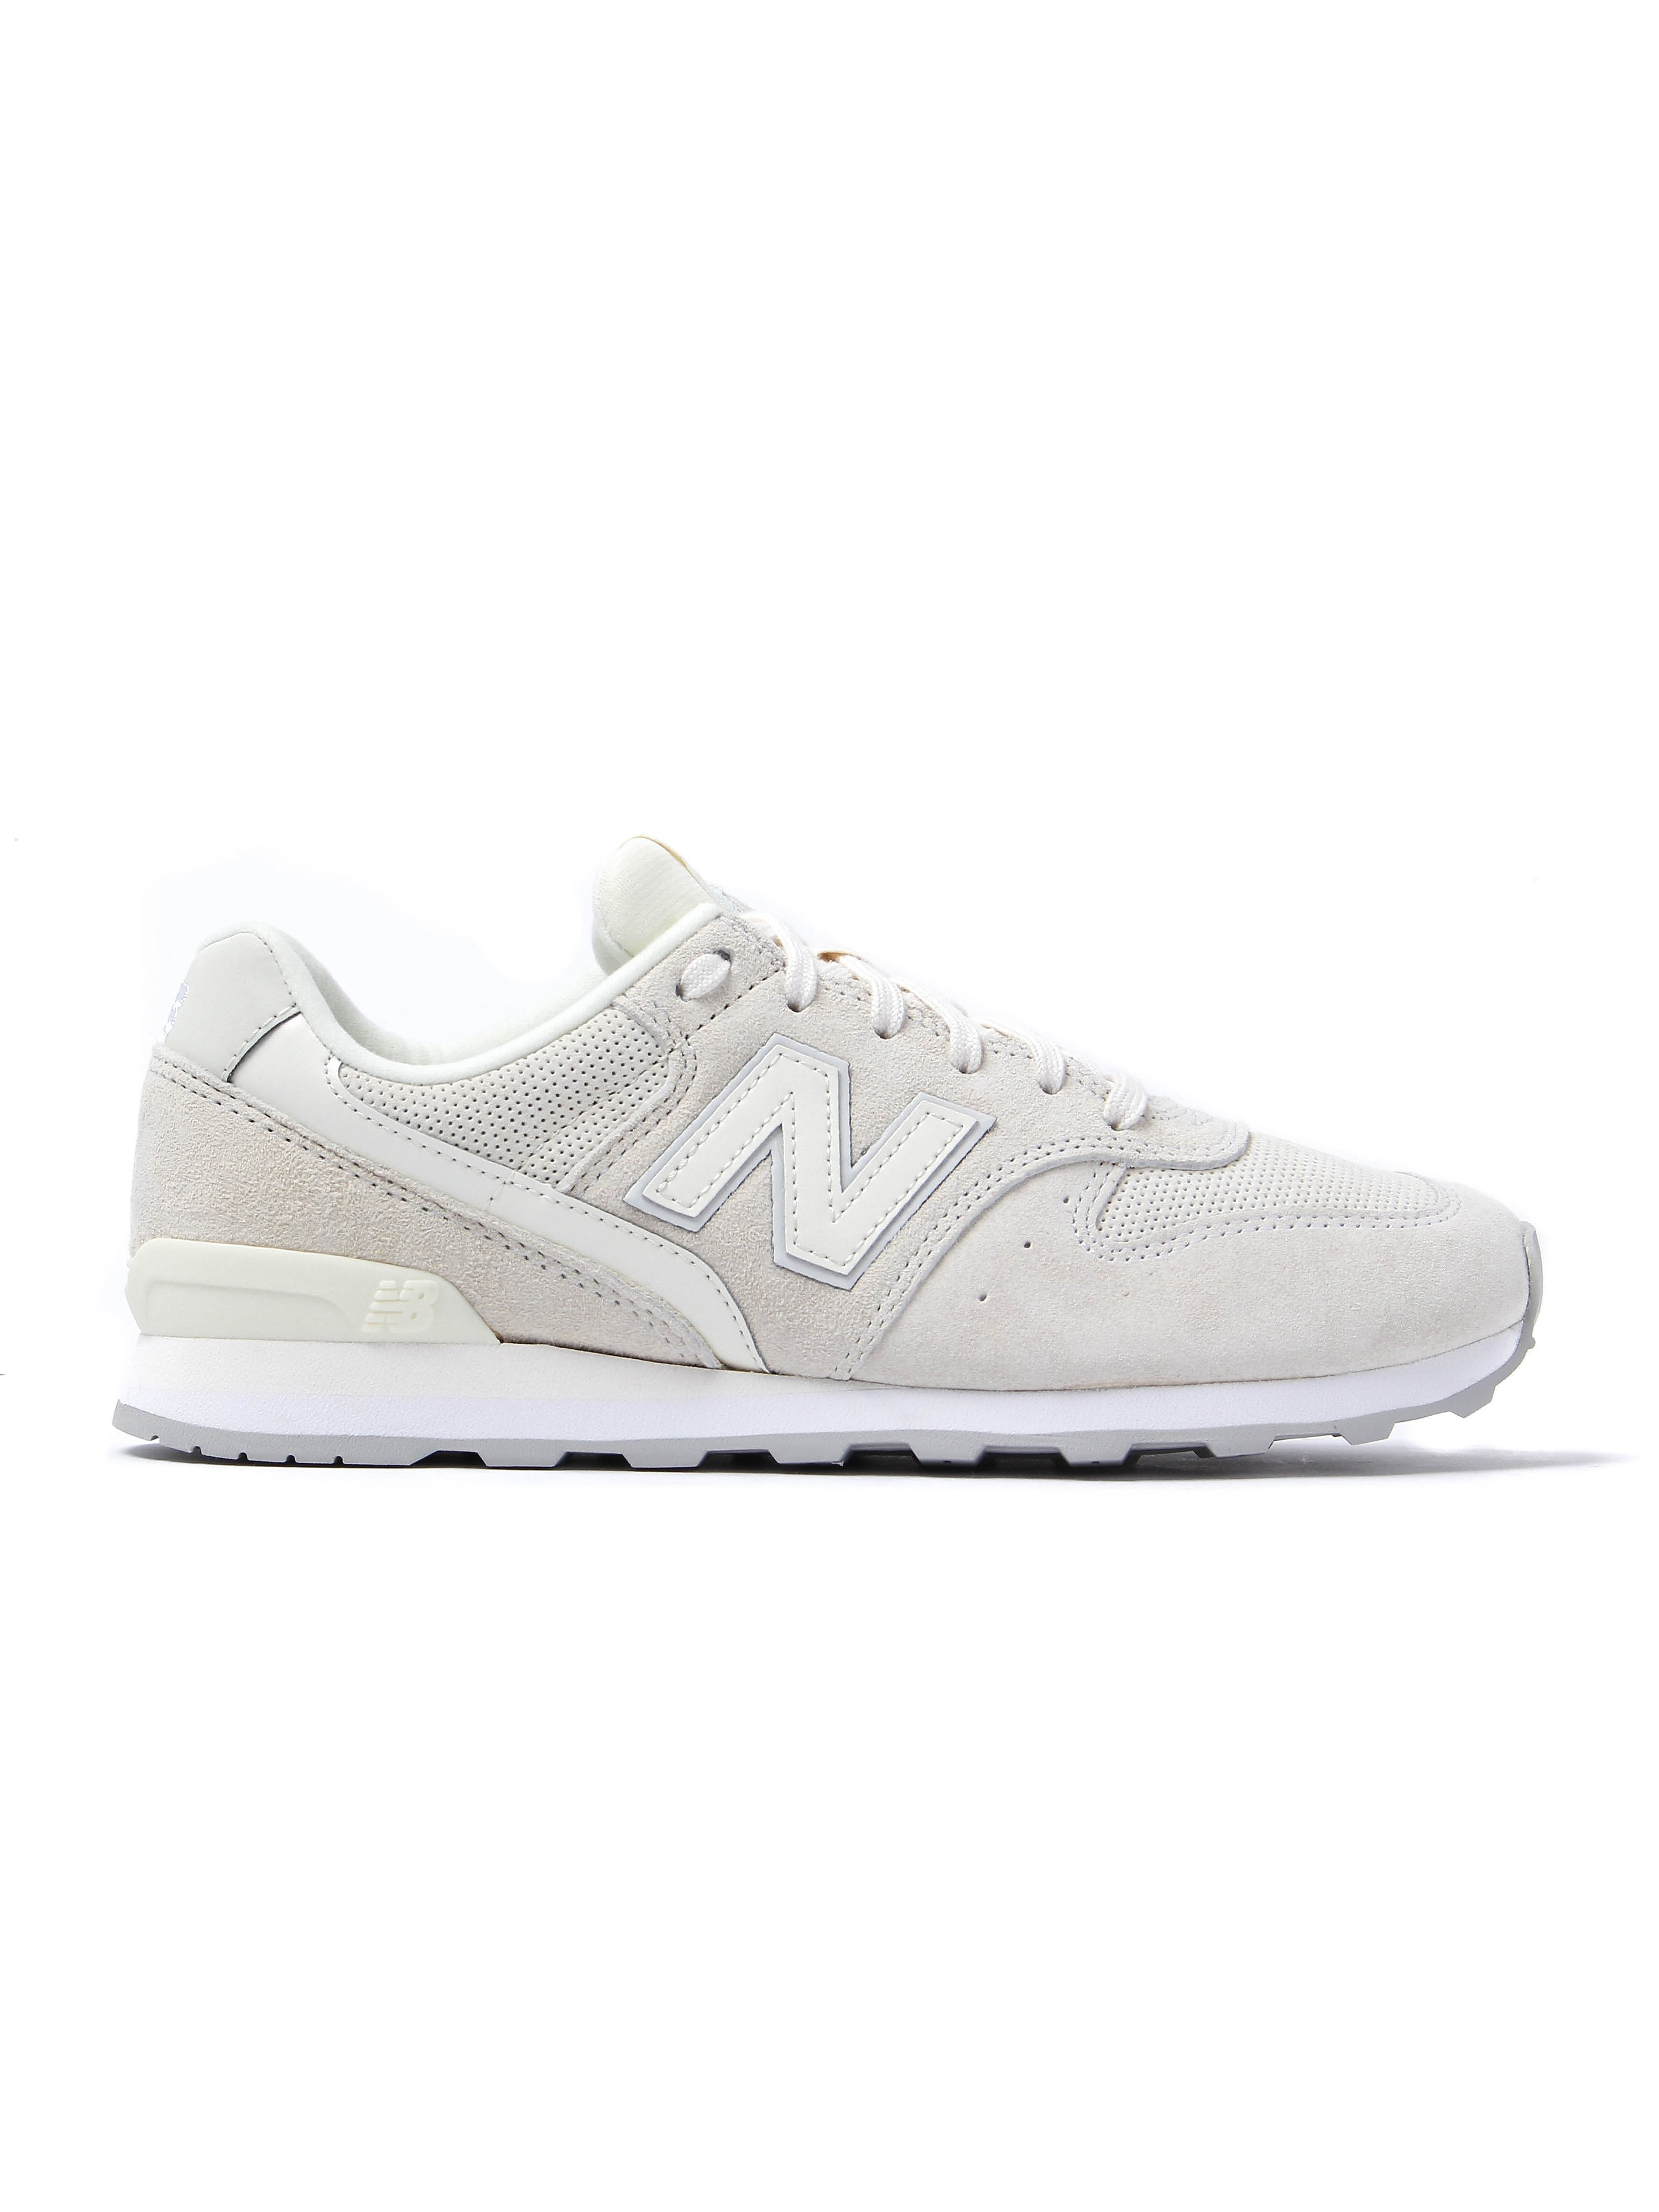 New Balance Women's 996 Trainers - Cream Suede